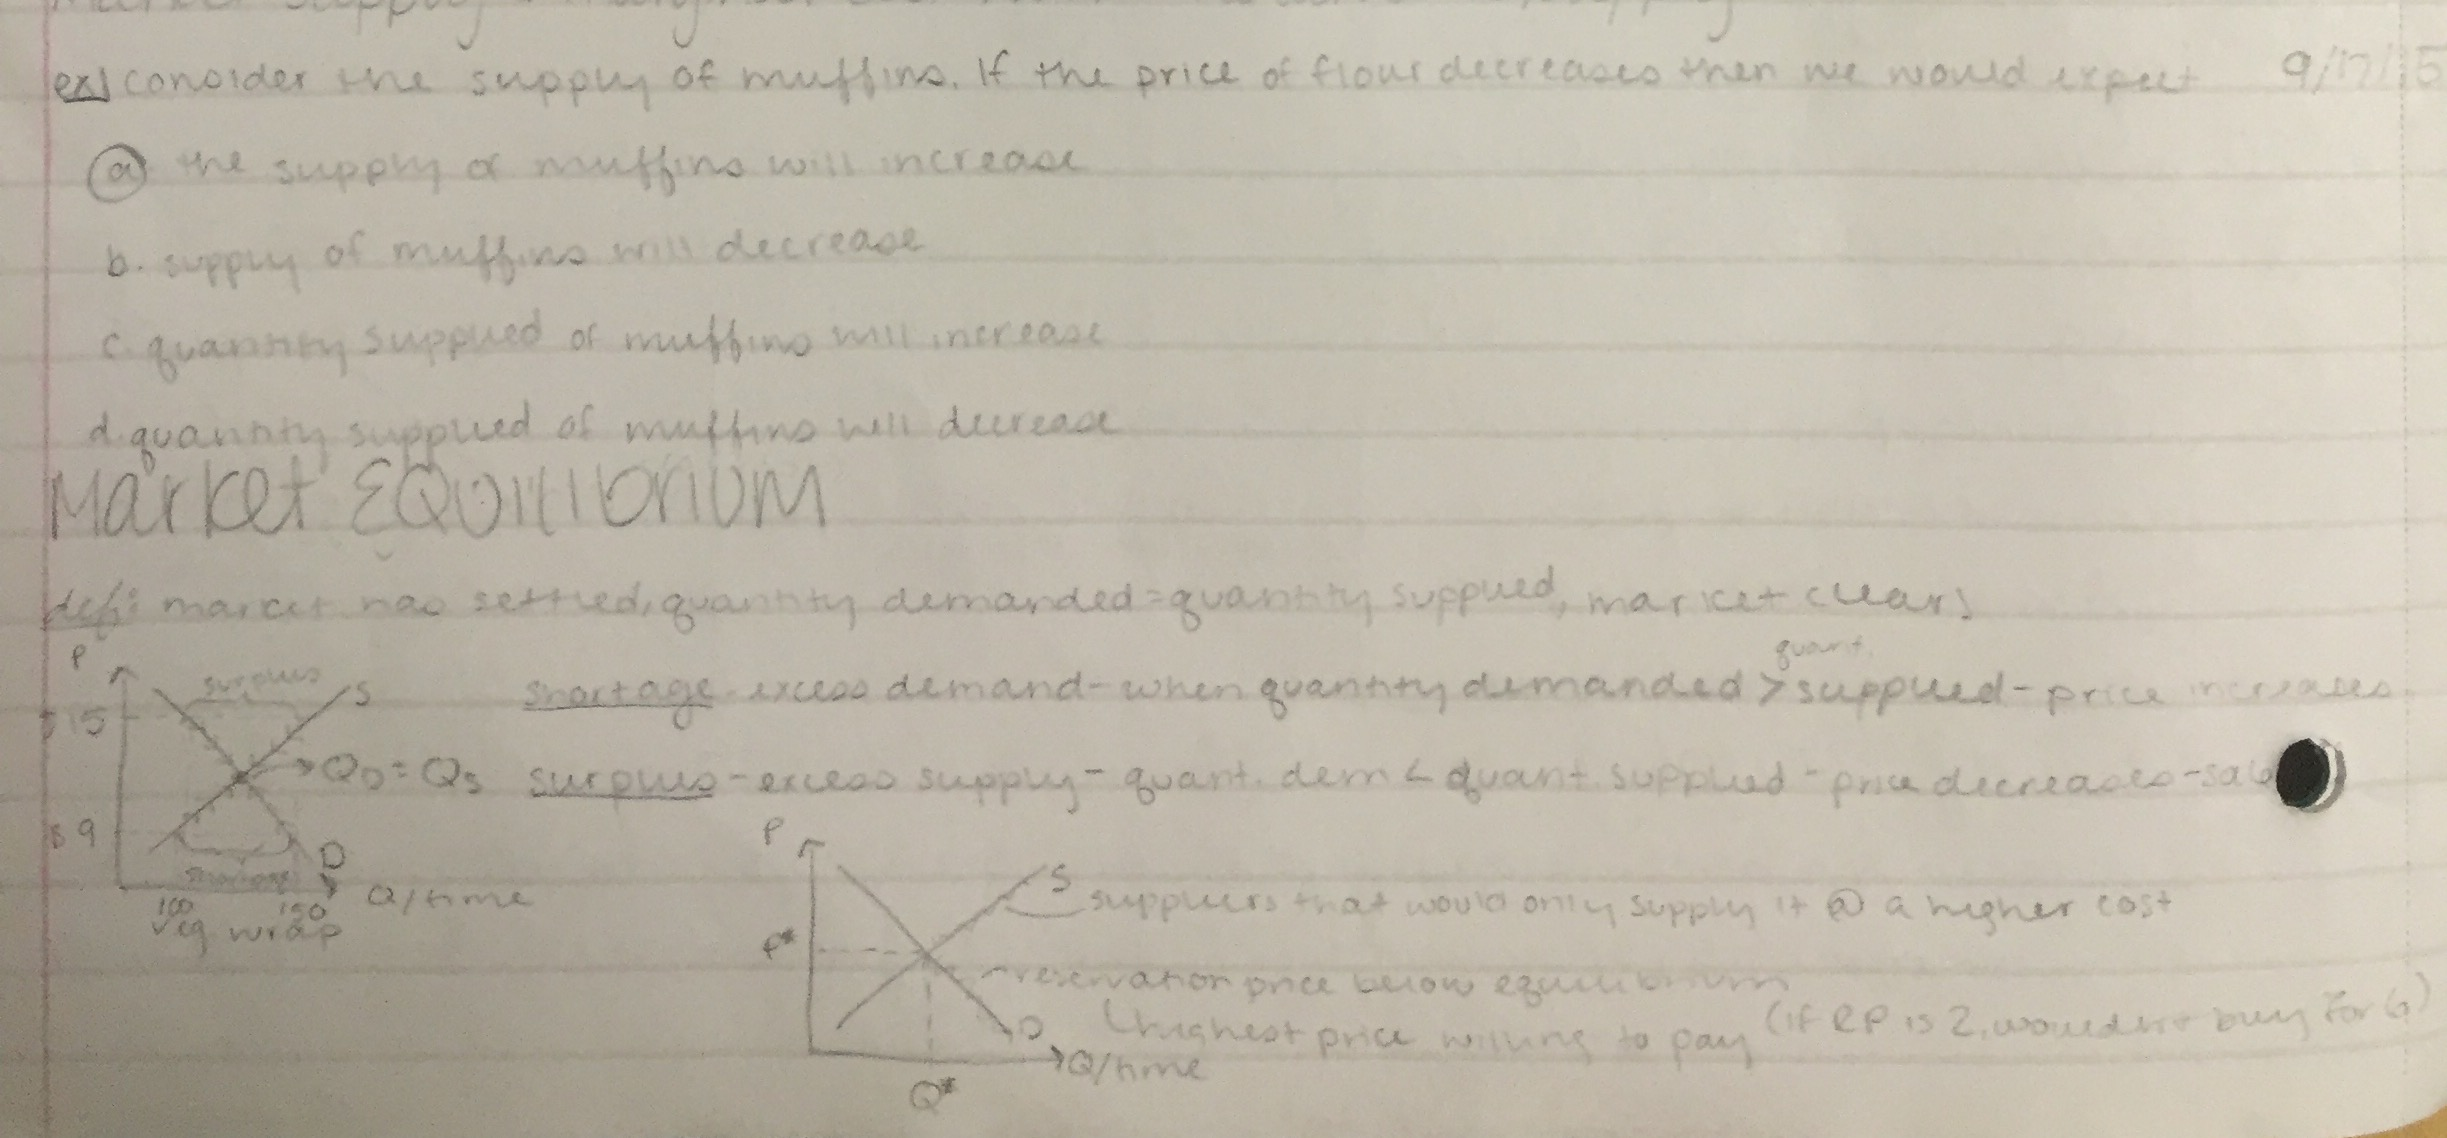 ECON 1010 - Class Notes - Week 5